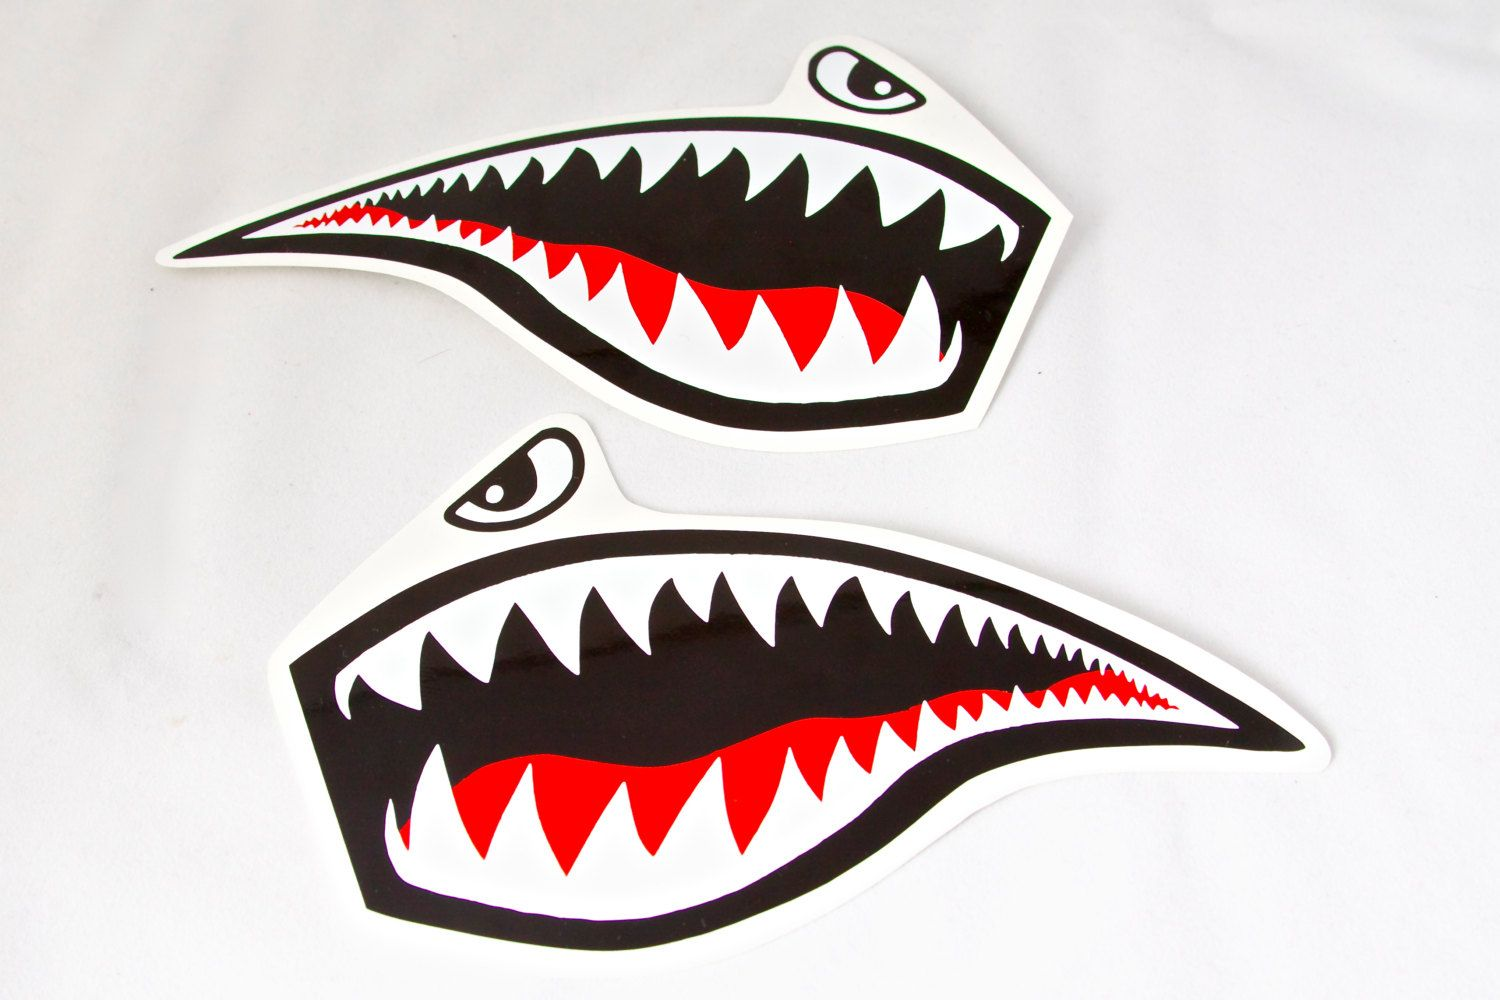 Jet Fighter Tiger Shark Roller Derby Helmet Vinyl Sticker Vinyl - Vinyl stickers for bikes